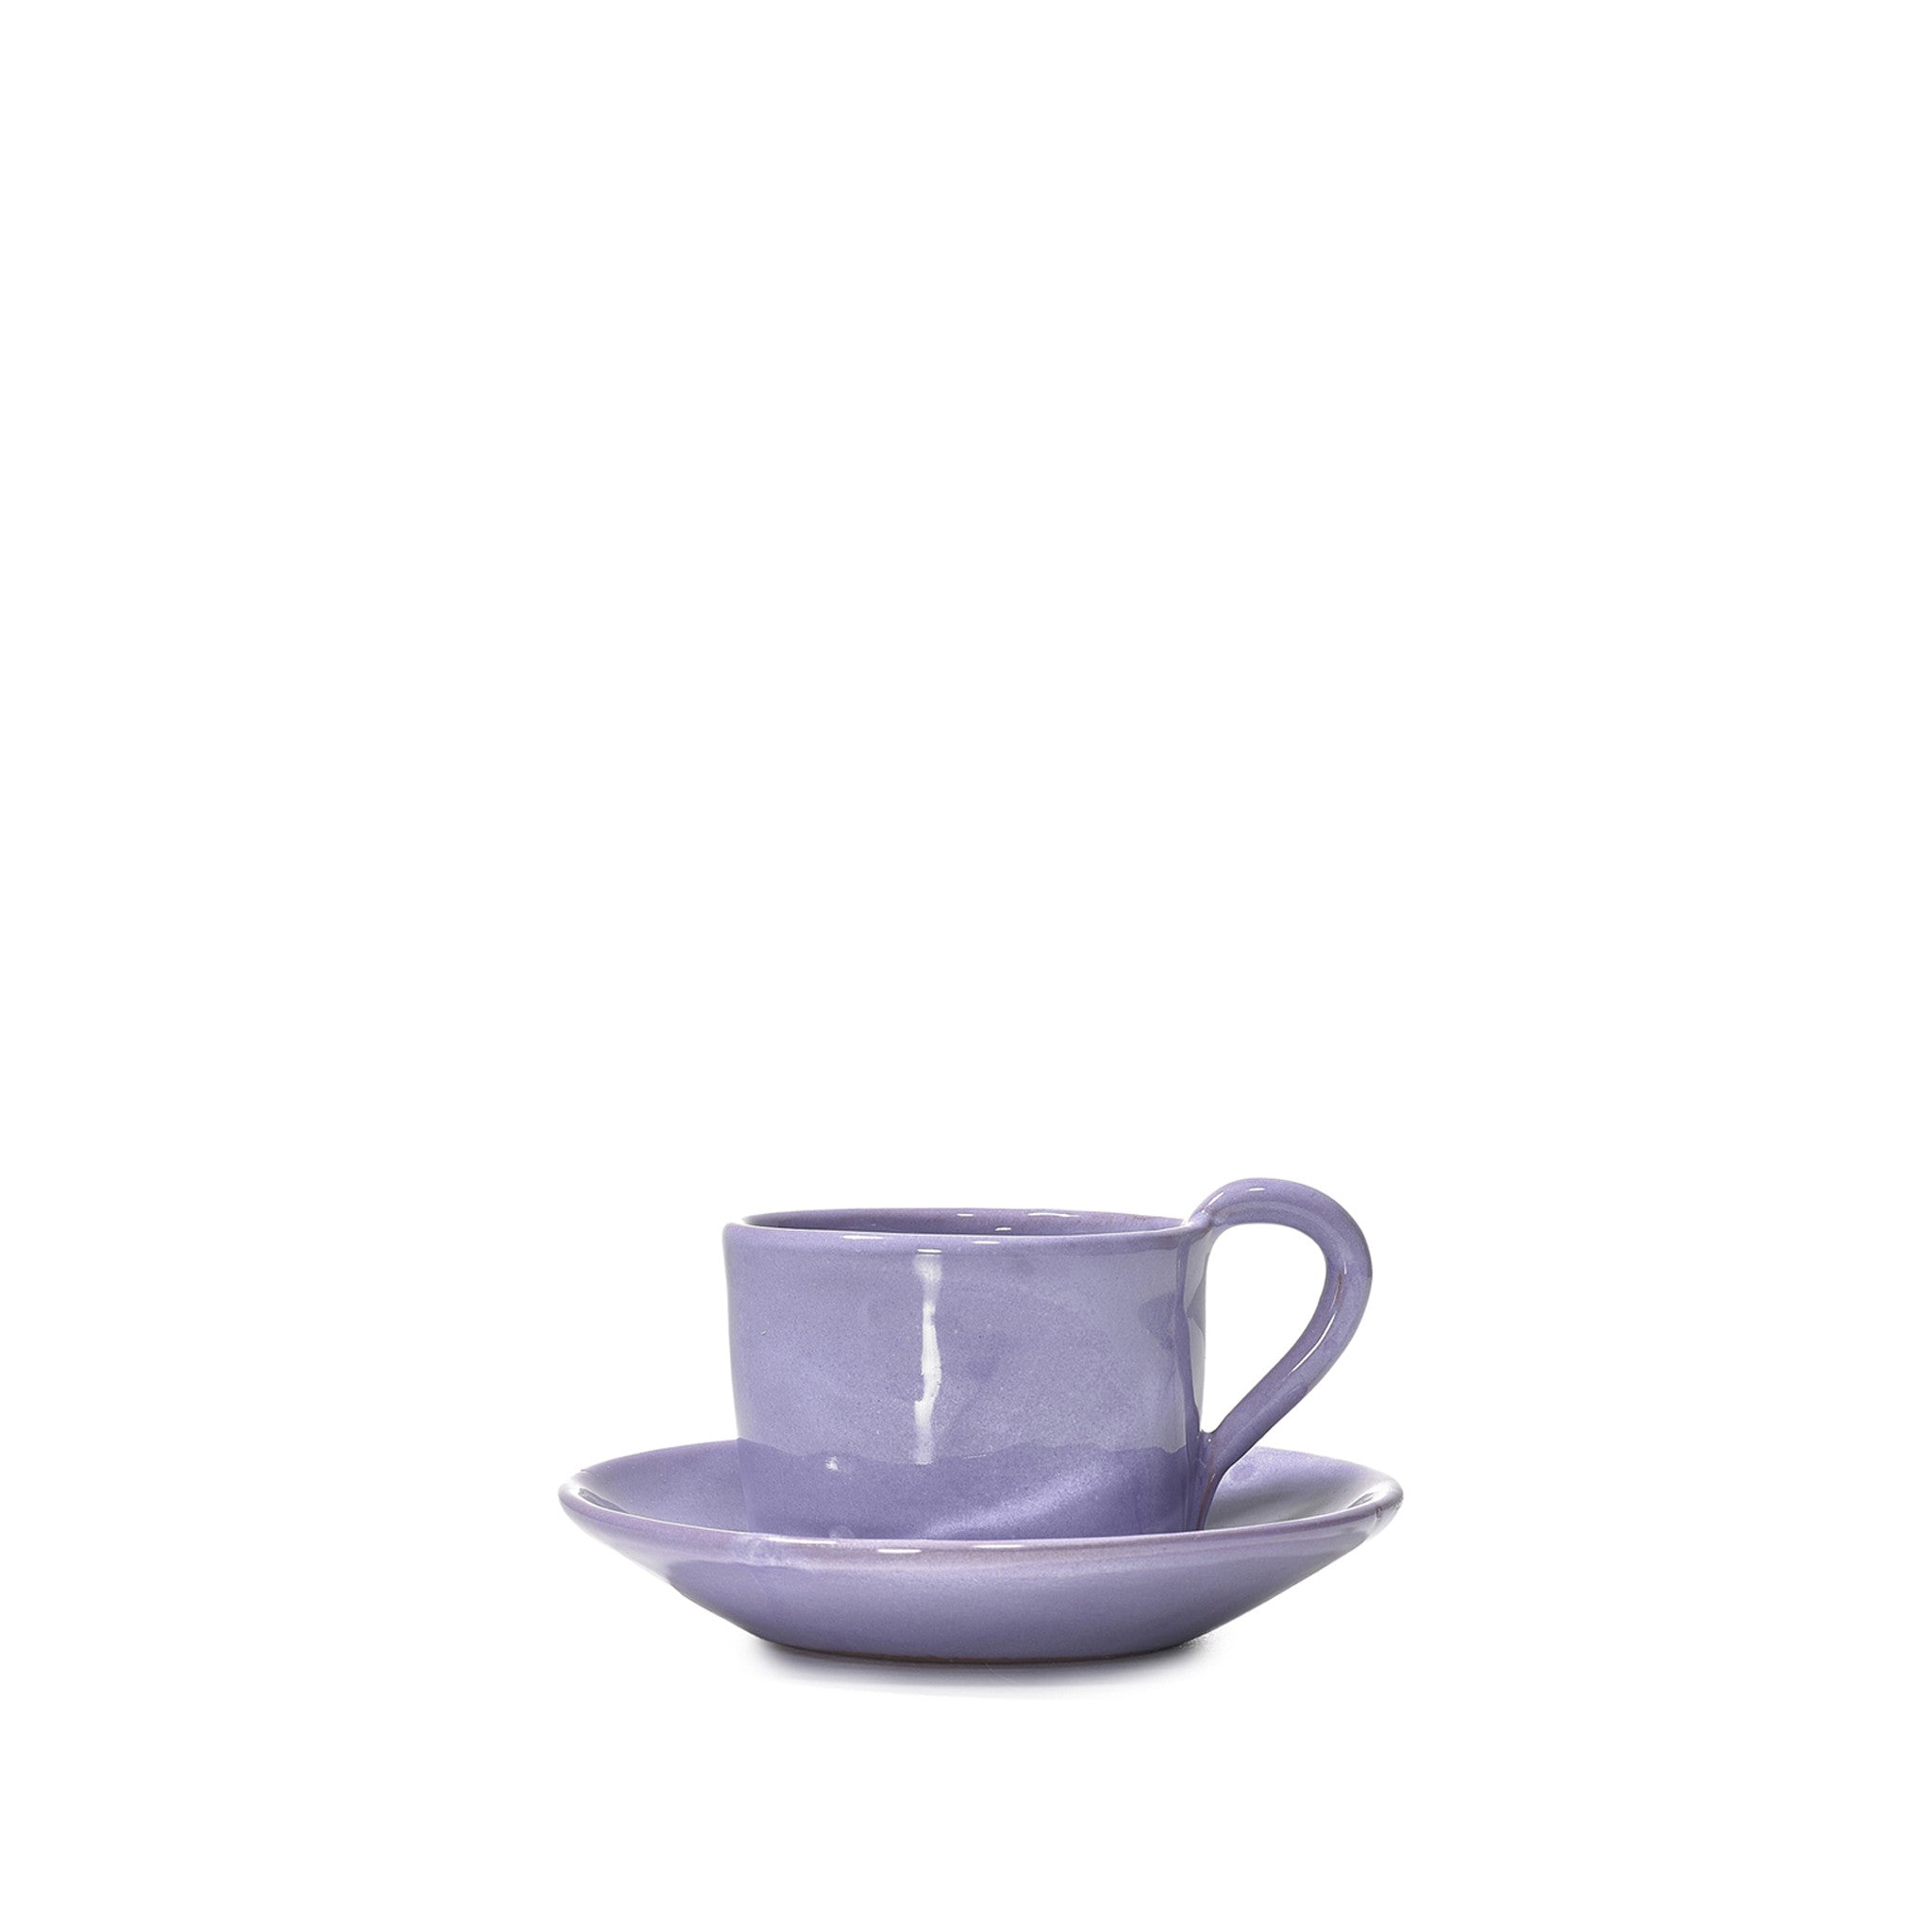 Espresso Cup and Saucer in Lilac